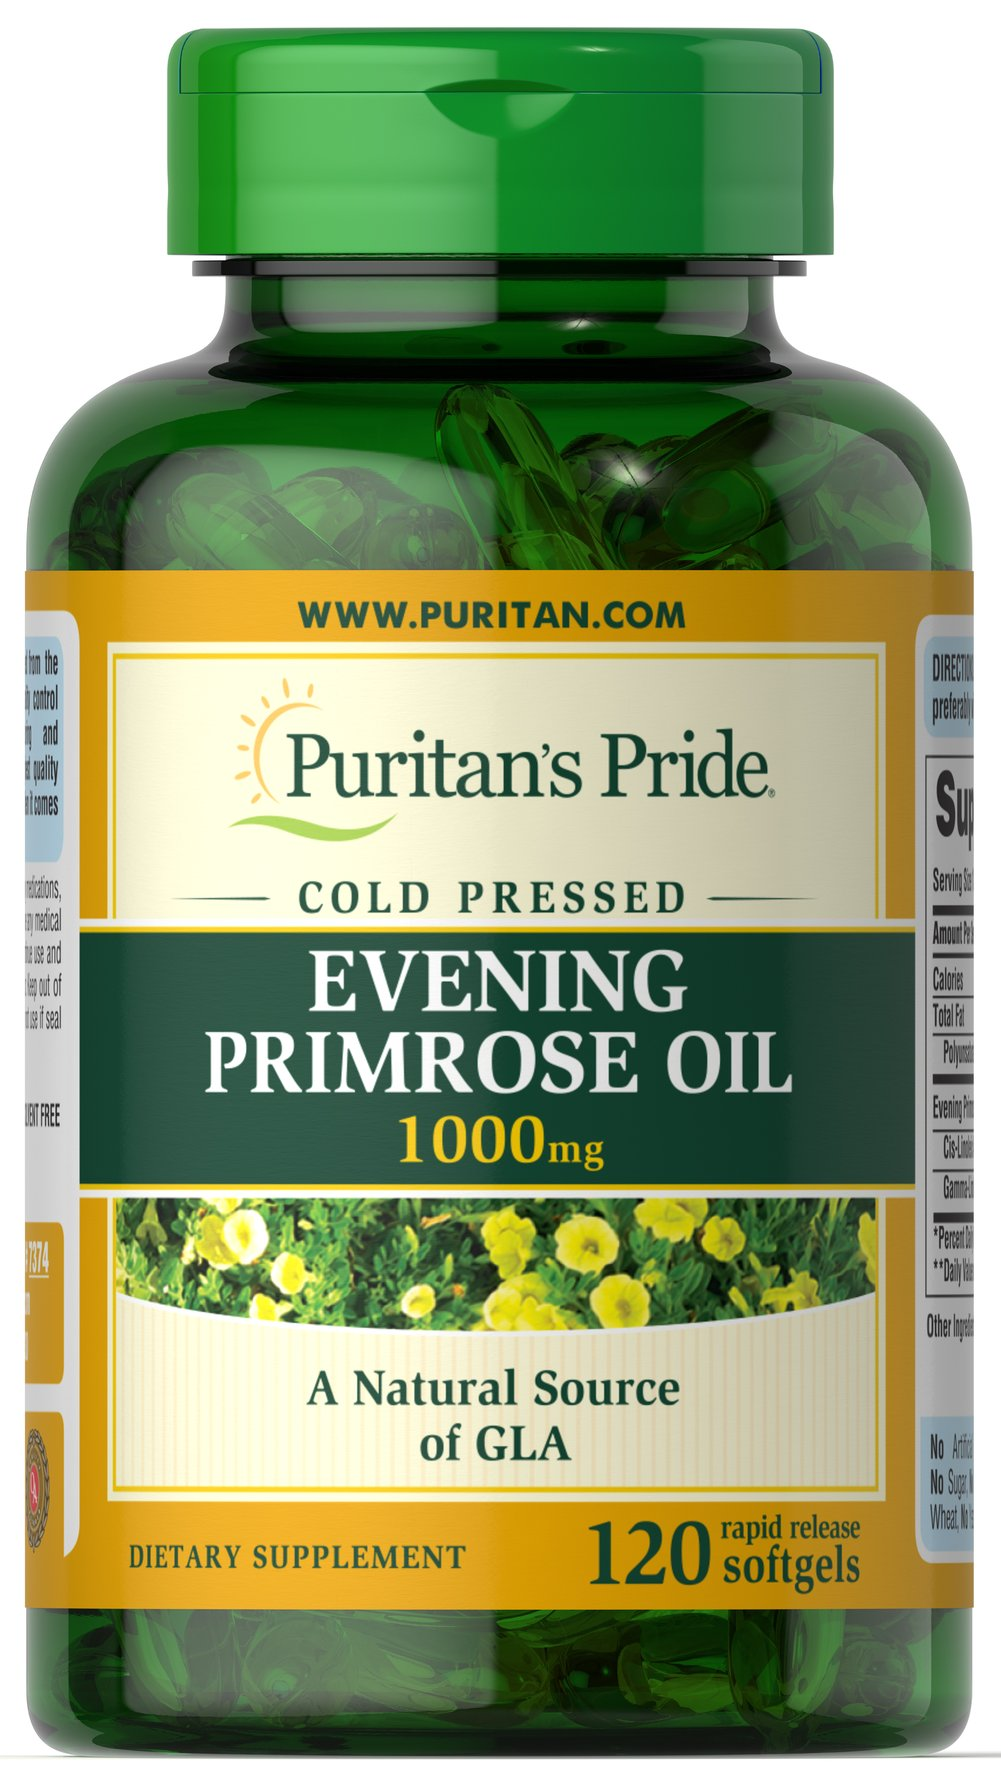 Evening Primrose Oil 1000 mg with GLA  120 Softgels 1000 mg $26.99